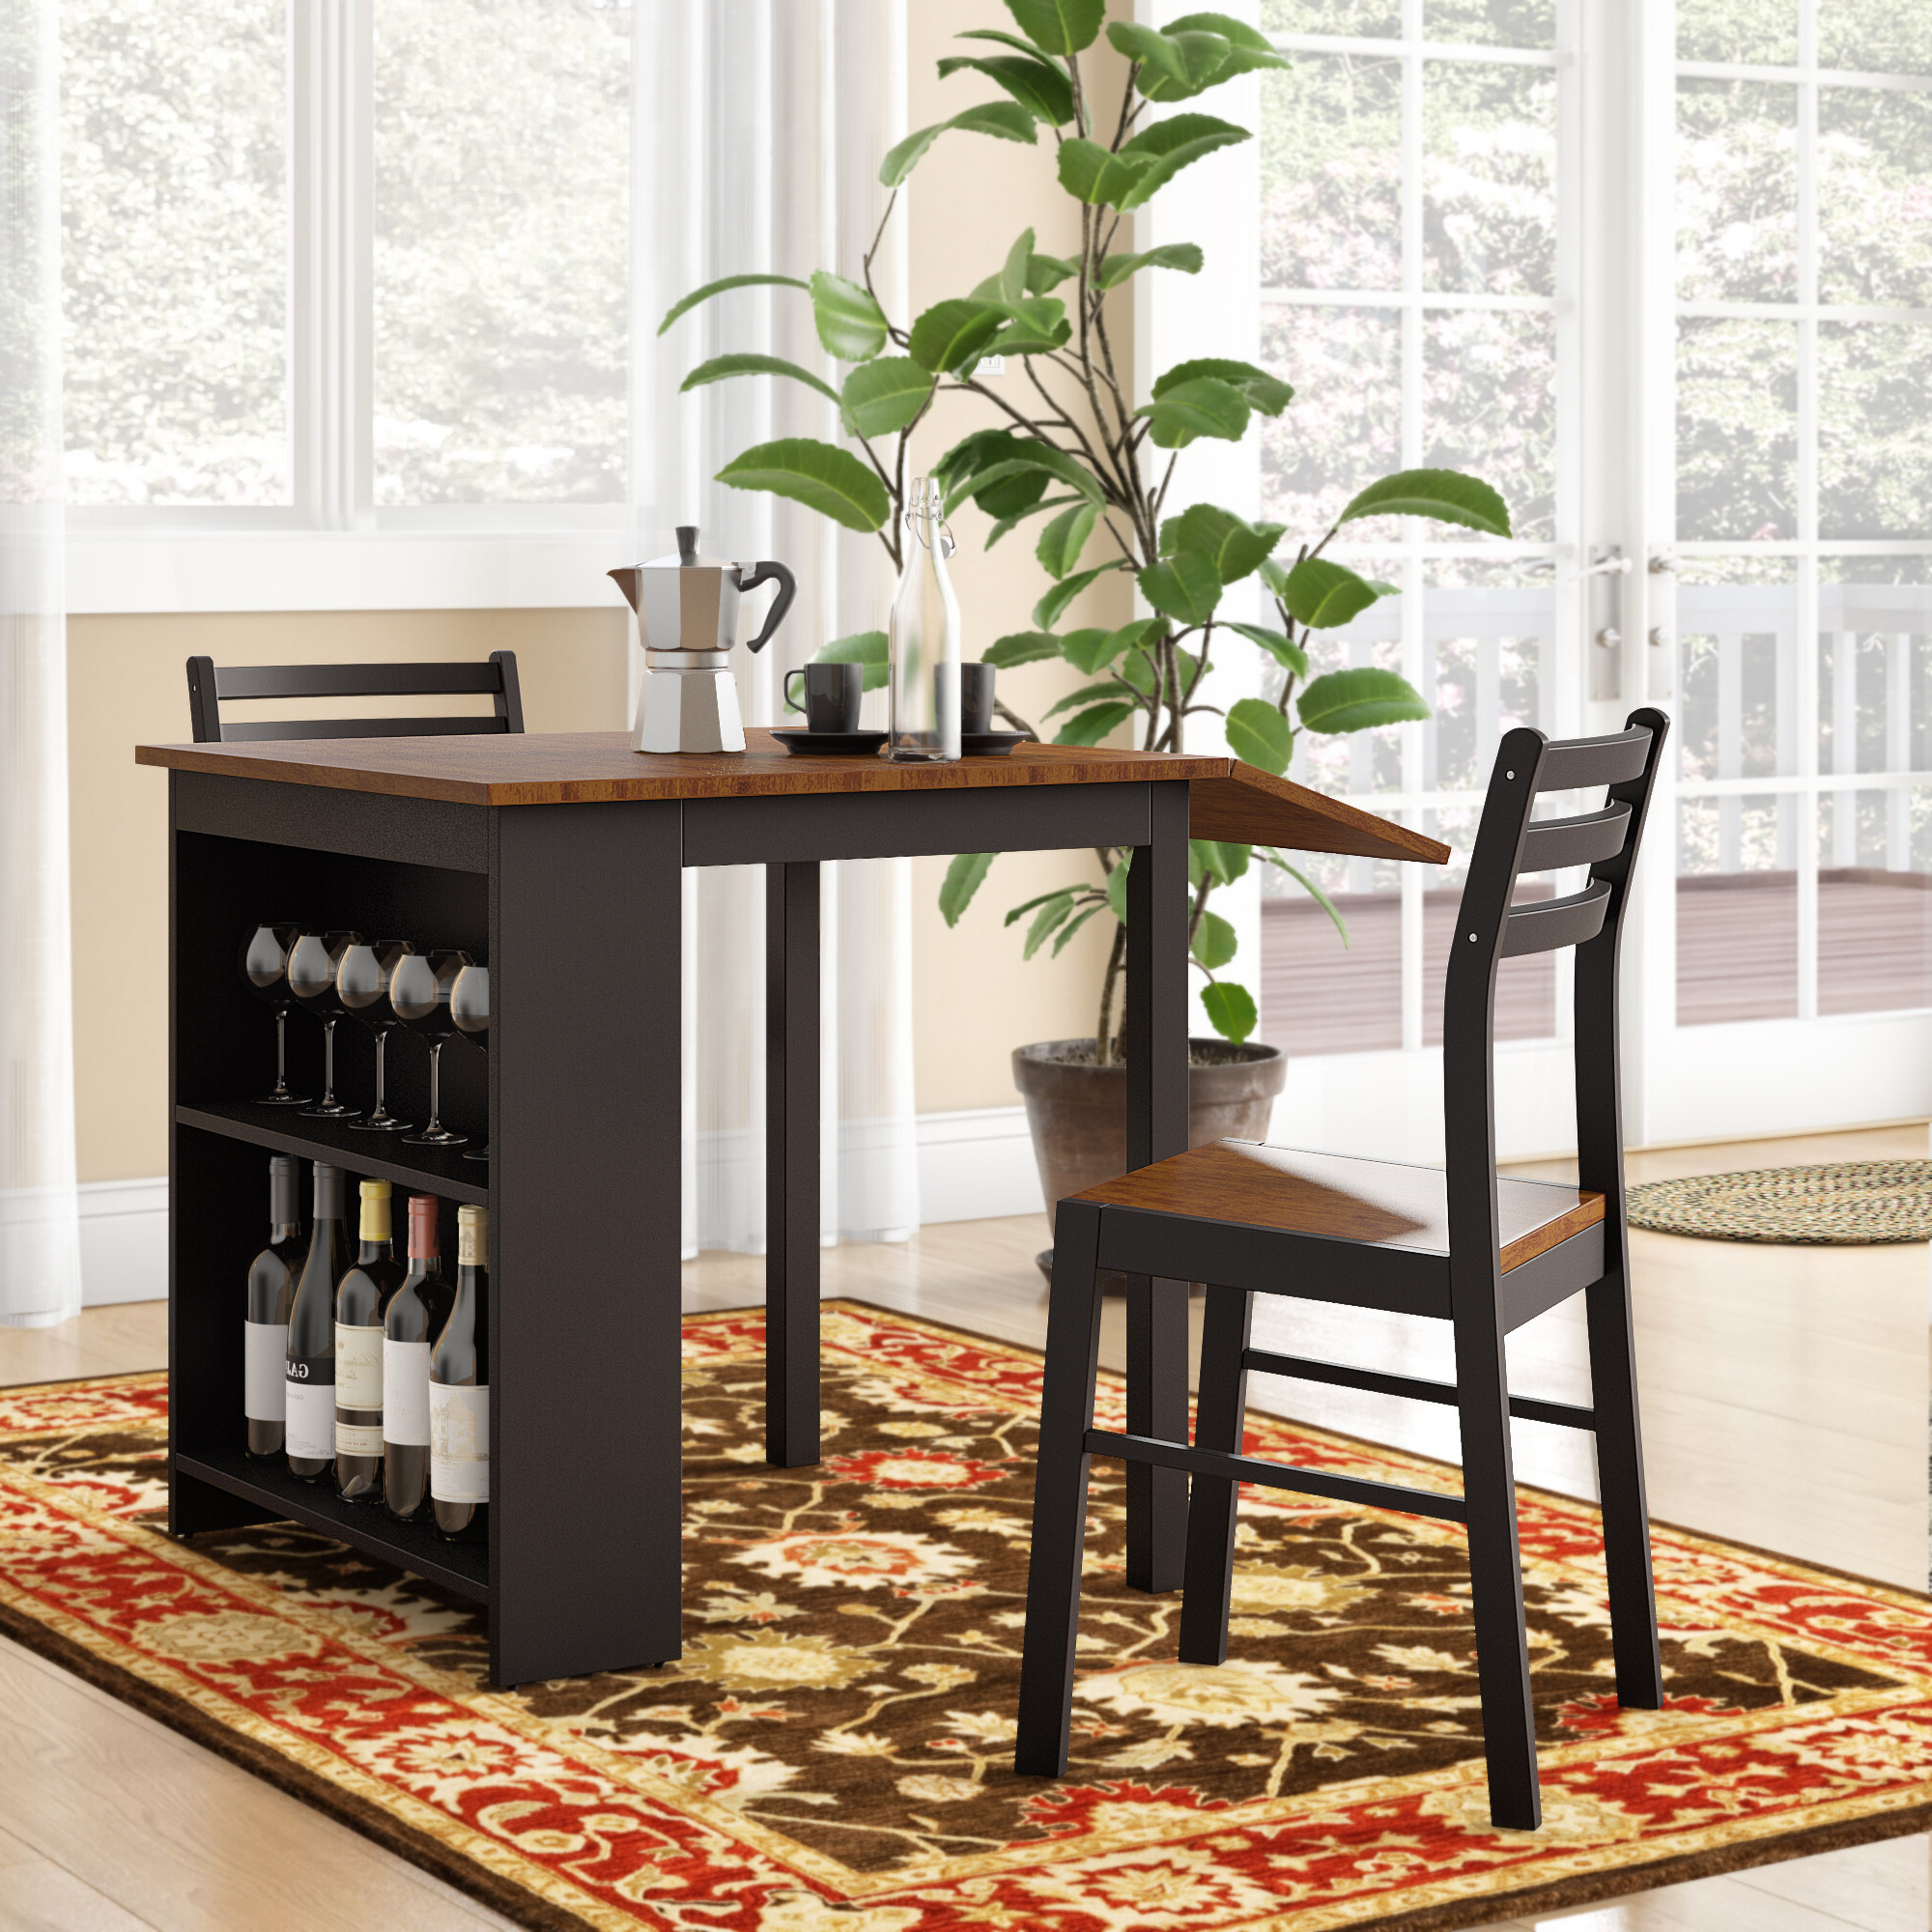 Favorite Isolde 3 Piece Dining Sets Intended For Andover Mills Boehmer 3 Piece Dining Set & Reviews (View 4 of 25)